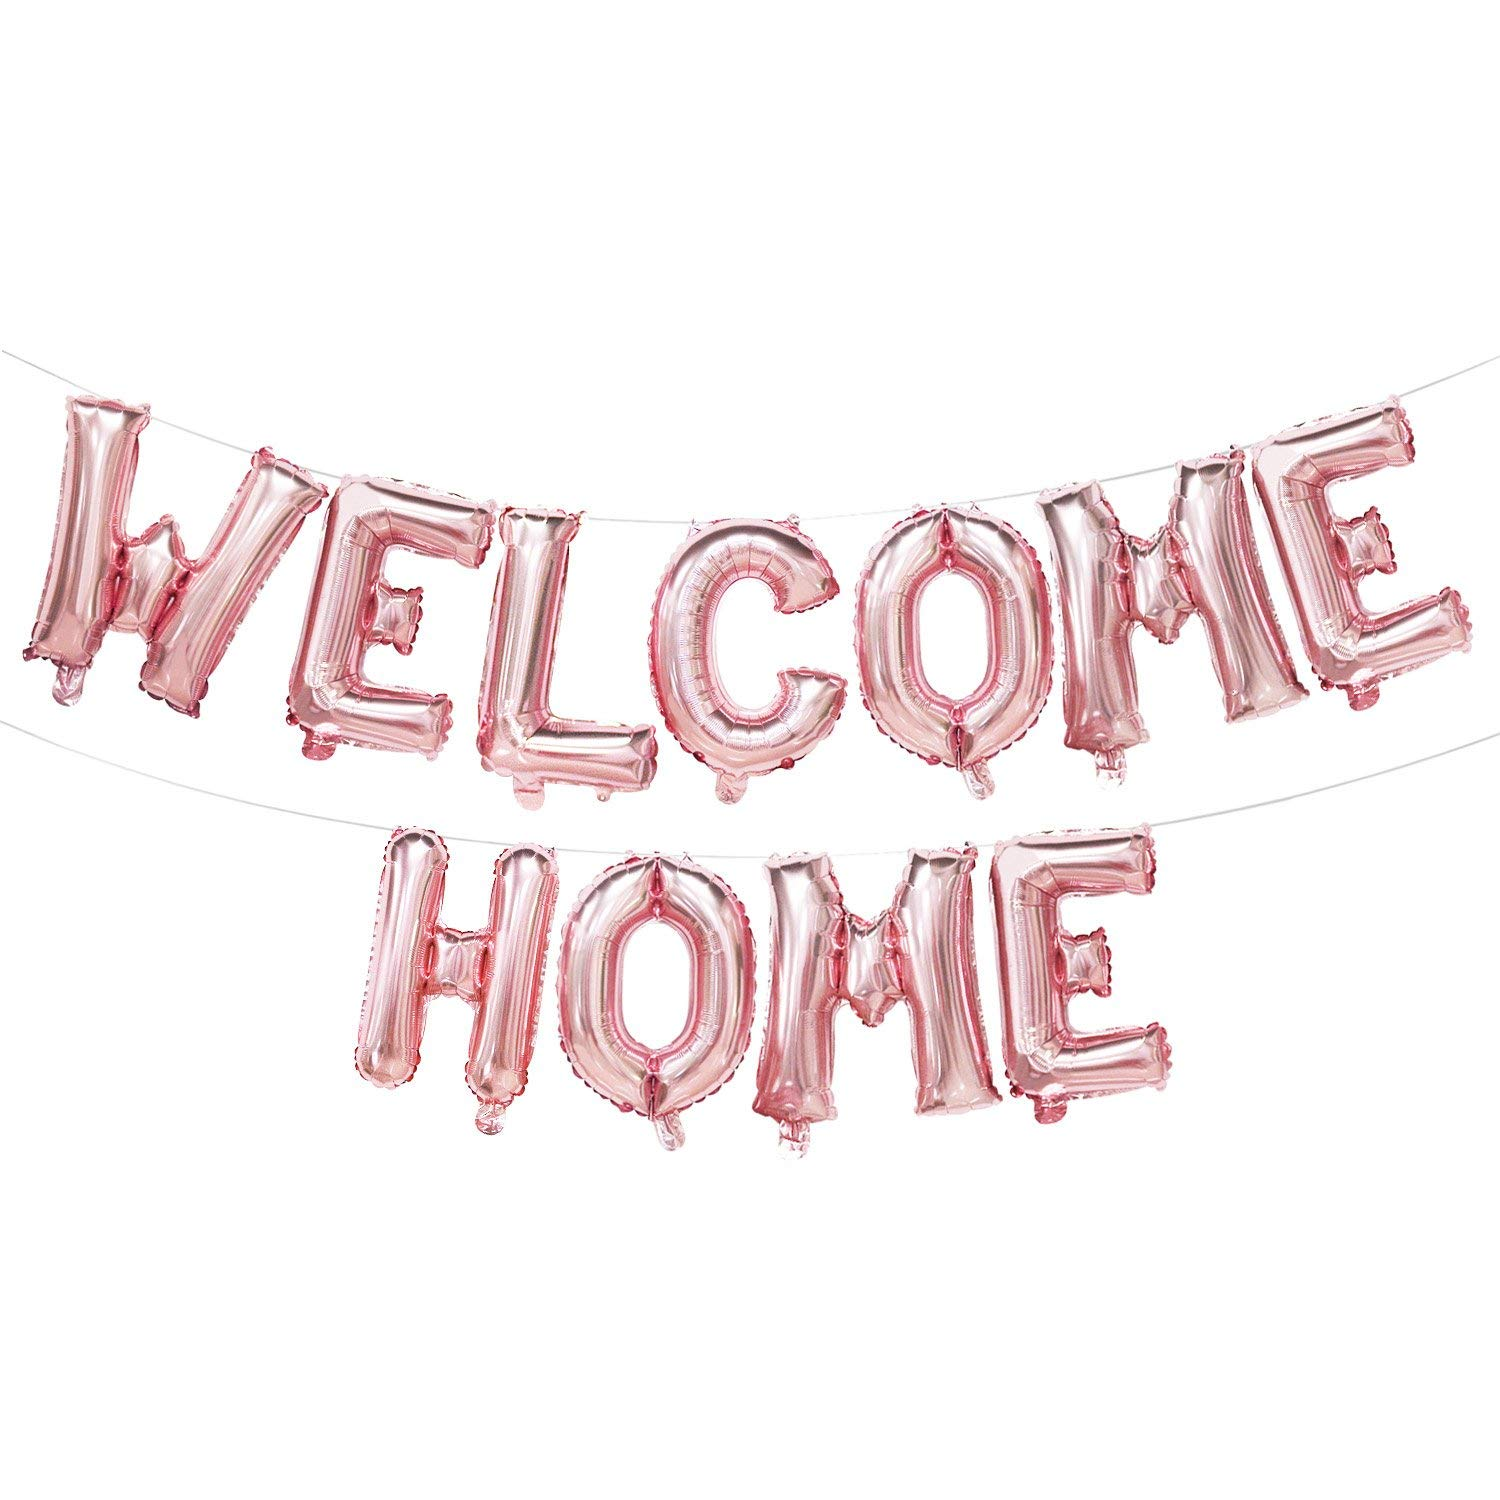 Welcome Home Banners and Signs - Welcome Home Balloons Letters - Welcome Home Party Decorations - Family Party Supplies